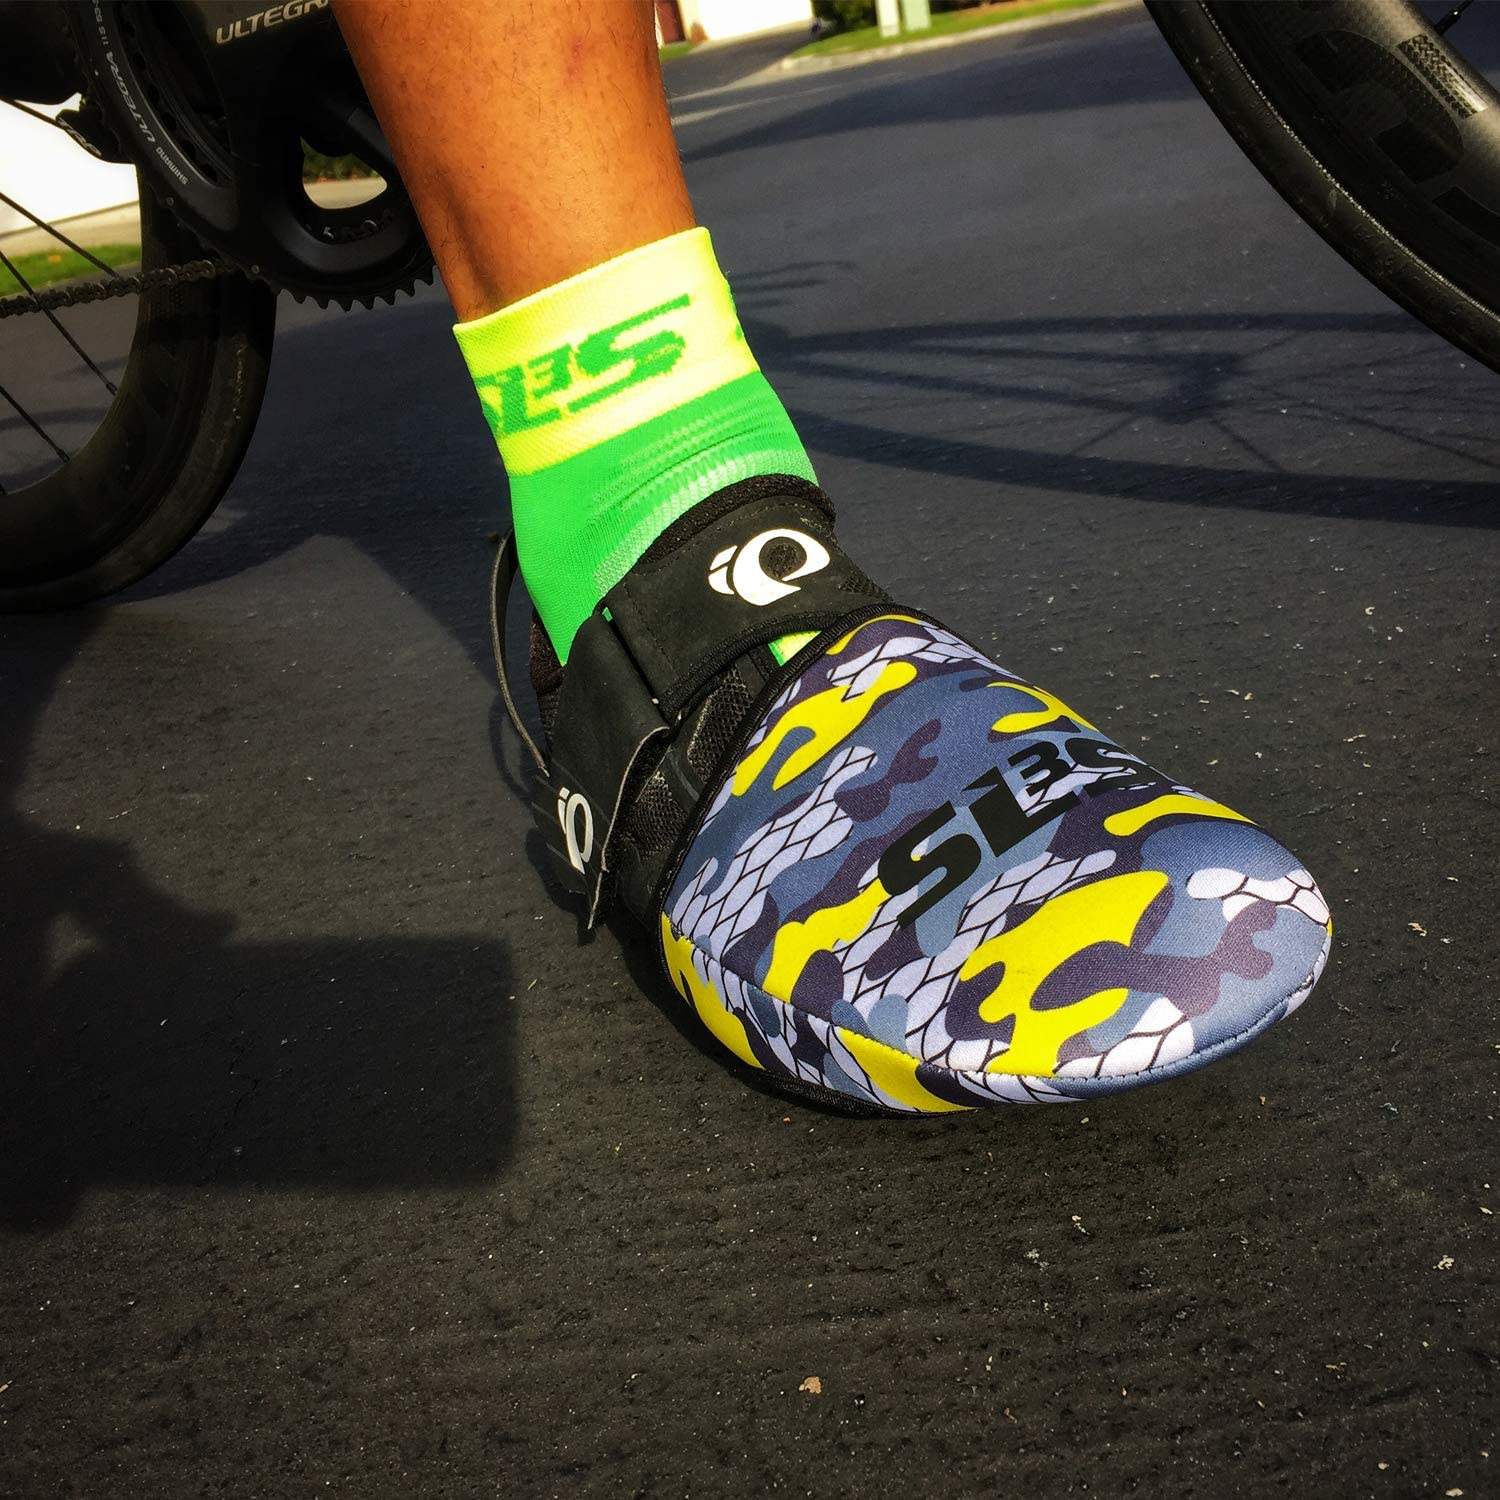 Windproof Waterproof SLS3 Cycling Toe Covers Toe Warmers Cycling Thermal  Cycle Toe Cover No More Cold